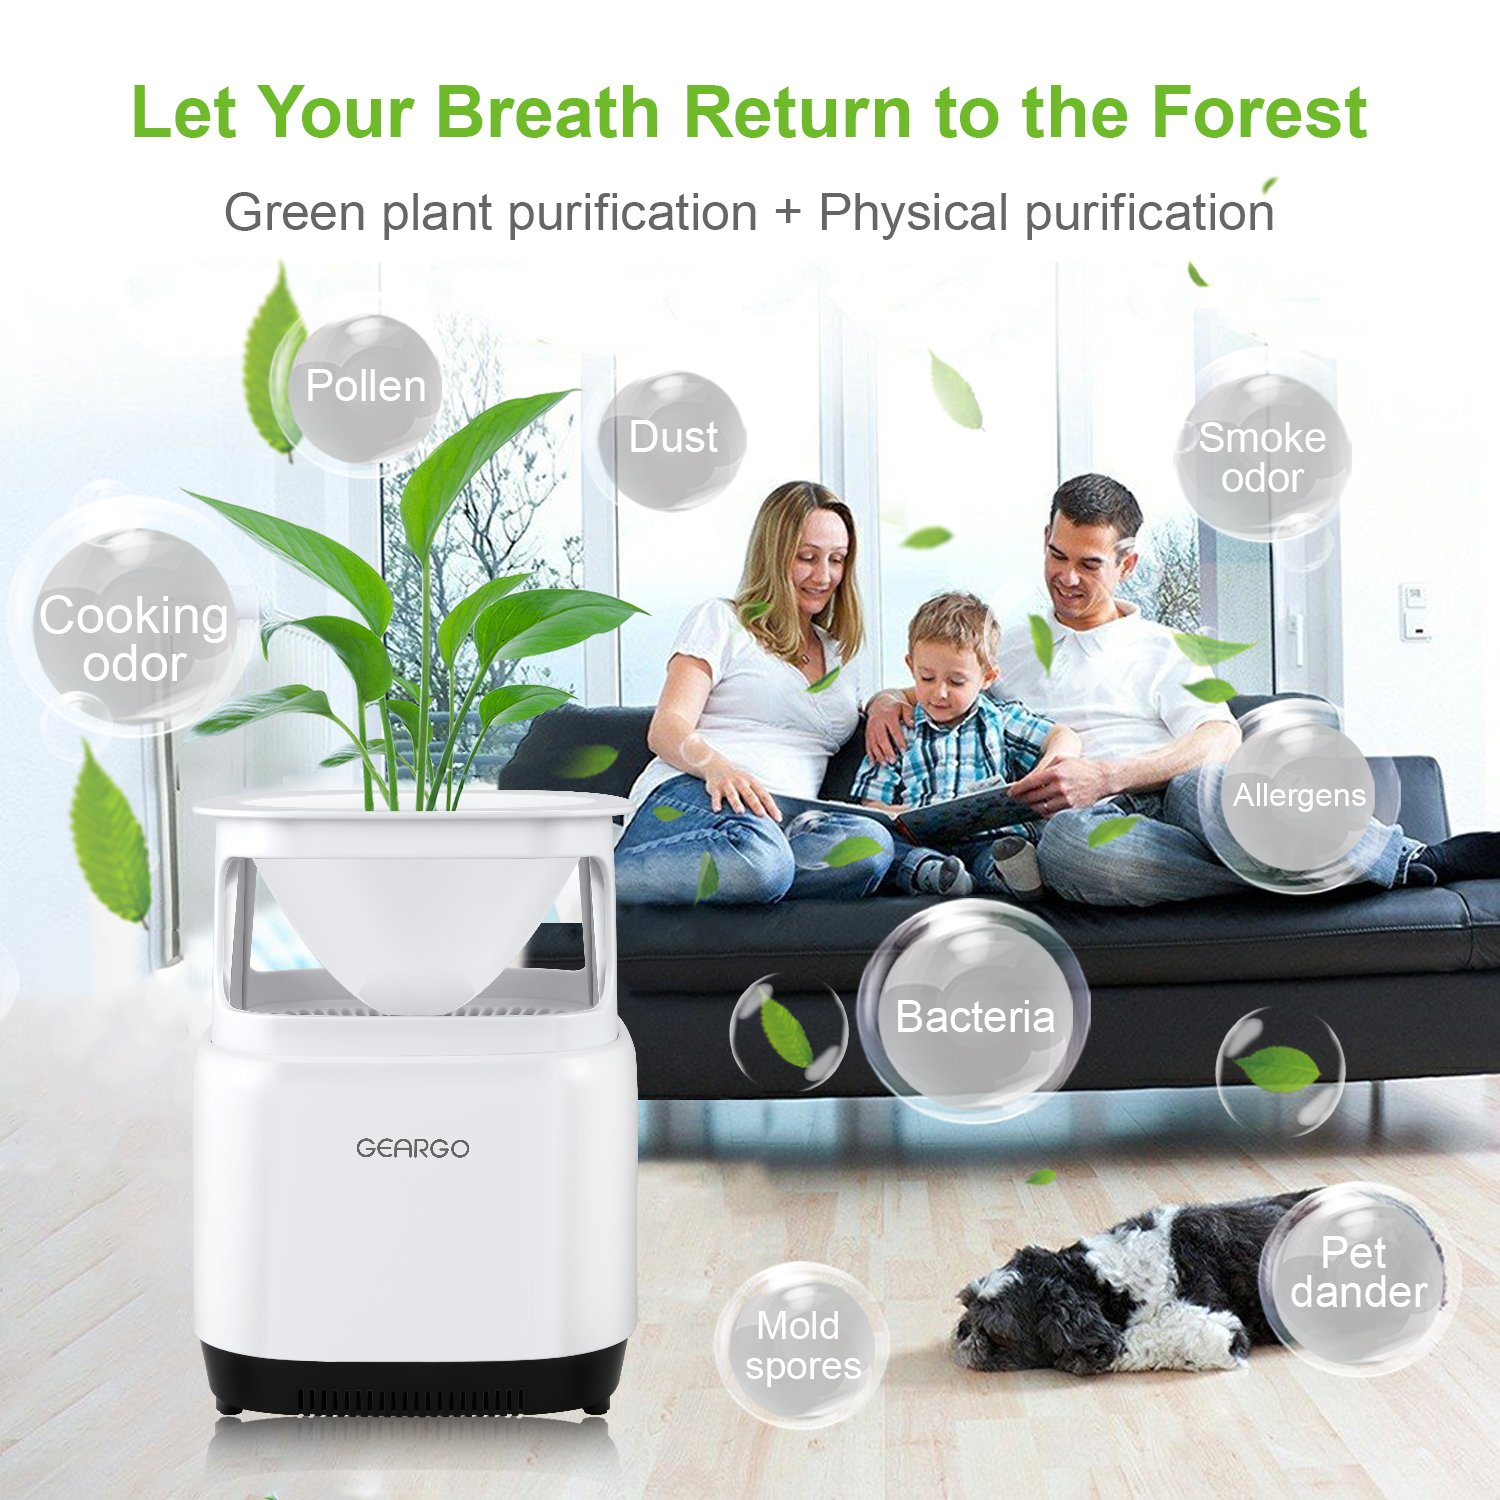 ... Design Air Cleaner with Plant and Physical Purification, for Dust, Pollen, Odors, Smoke, Allergies, Bacteria, Mold, Pets Dander: Amazon.es: Hogar